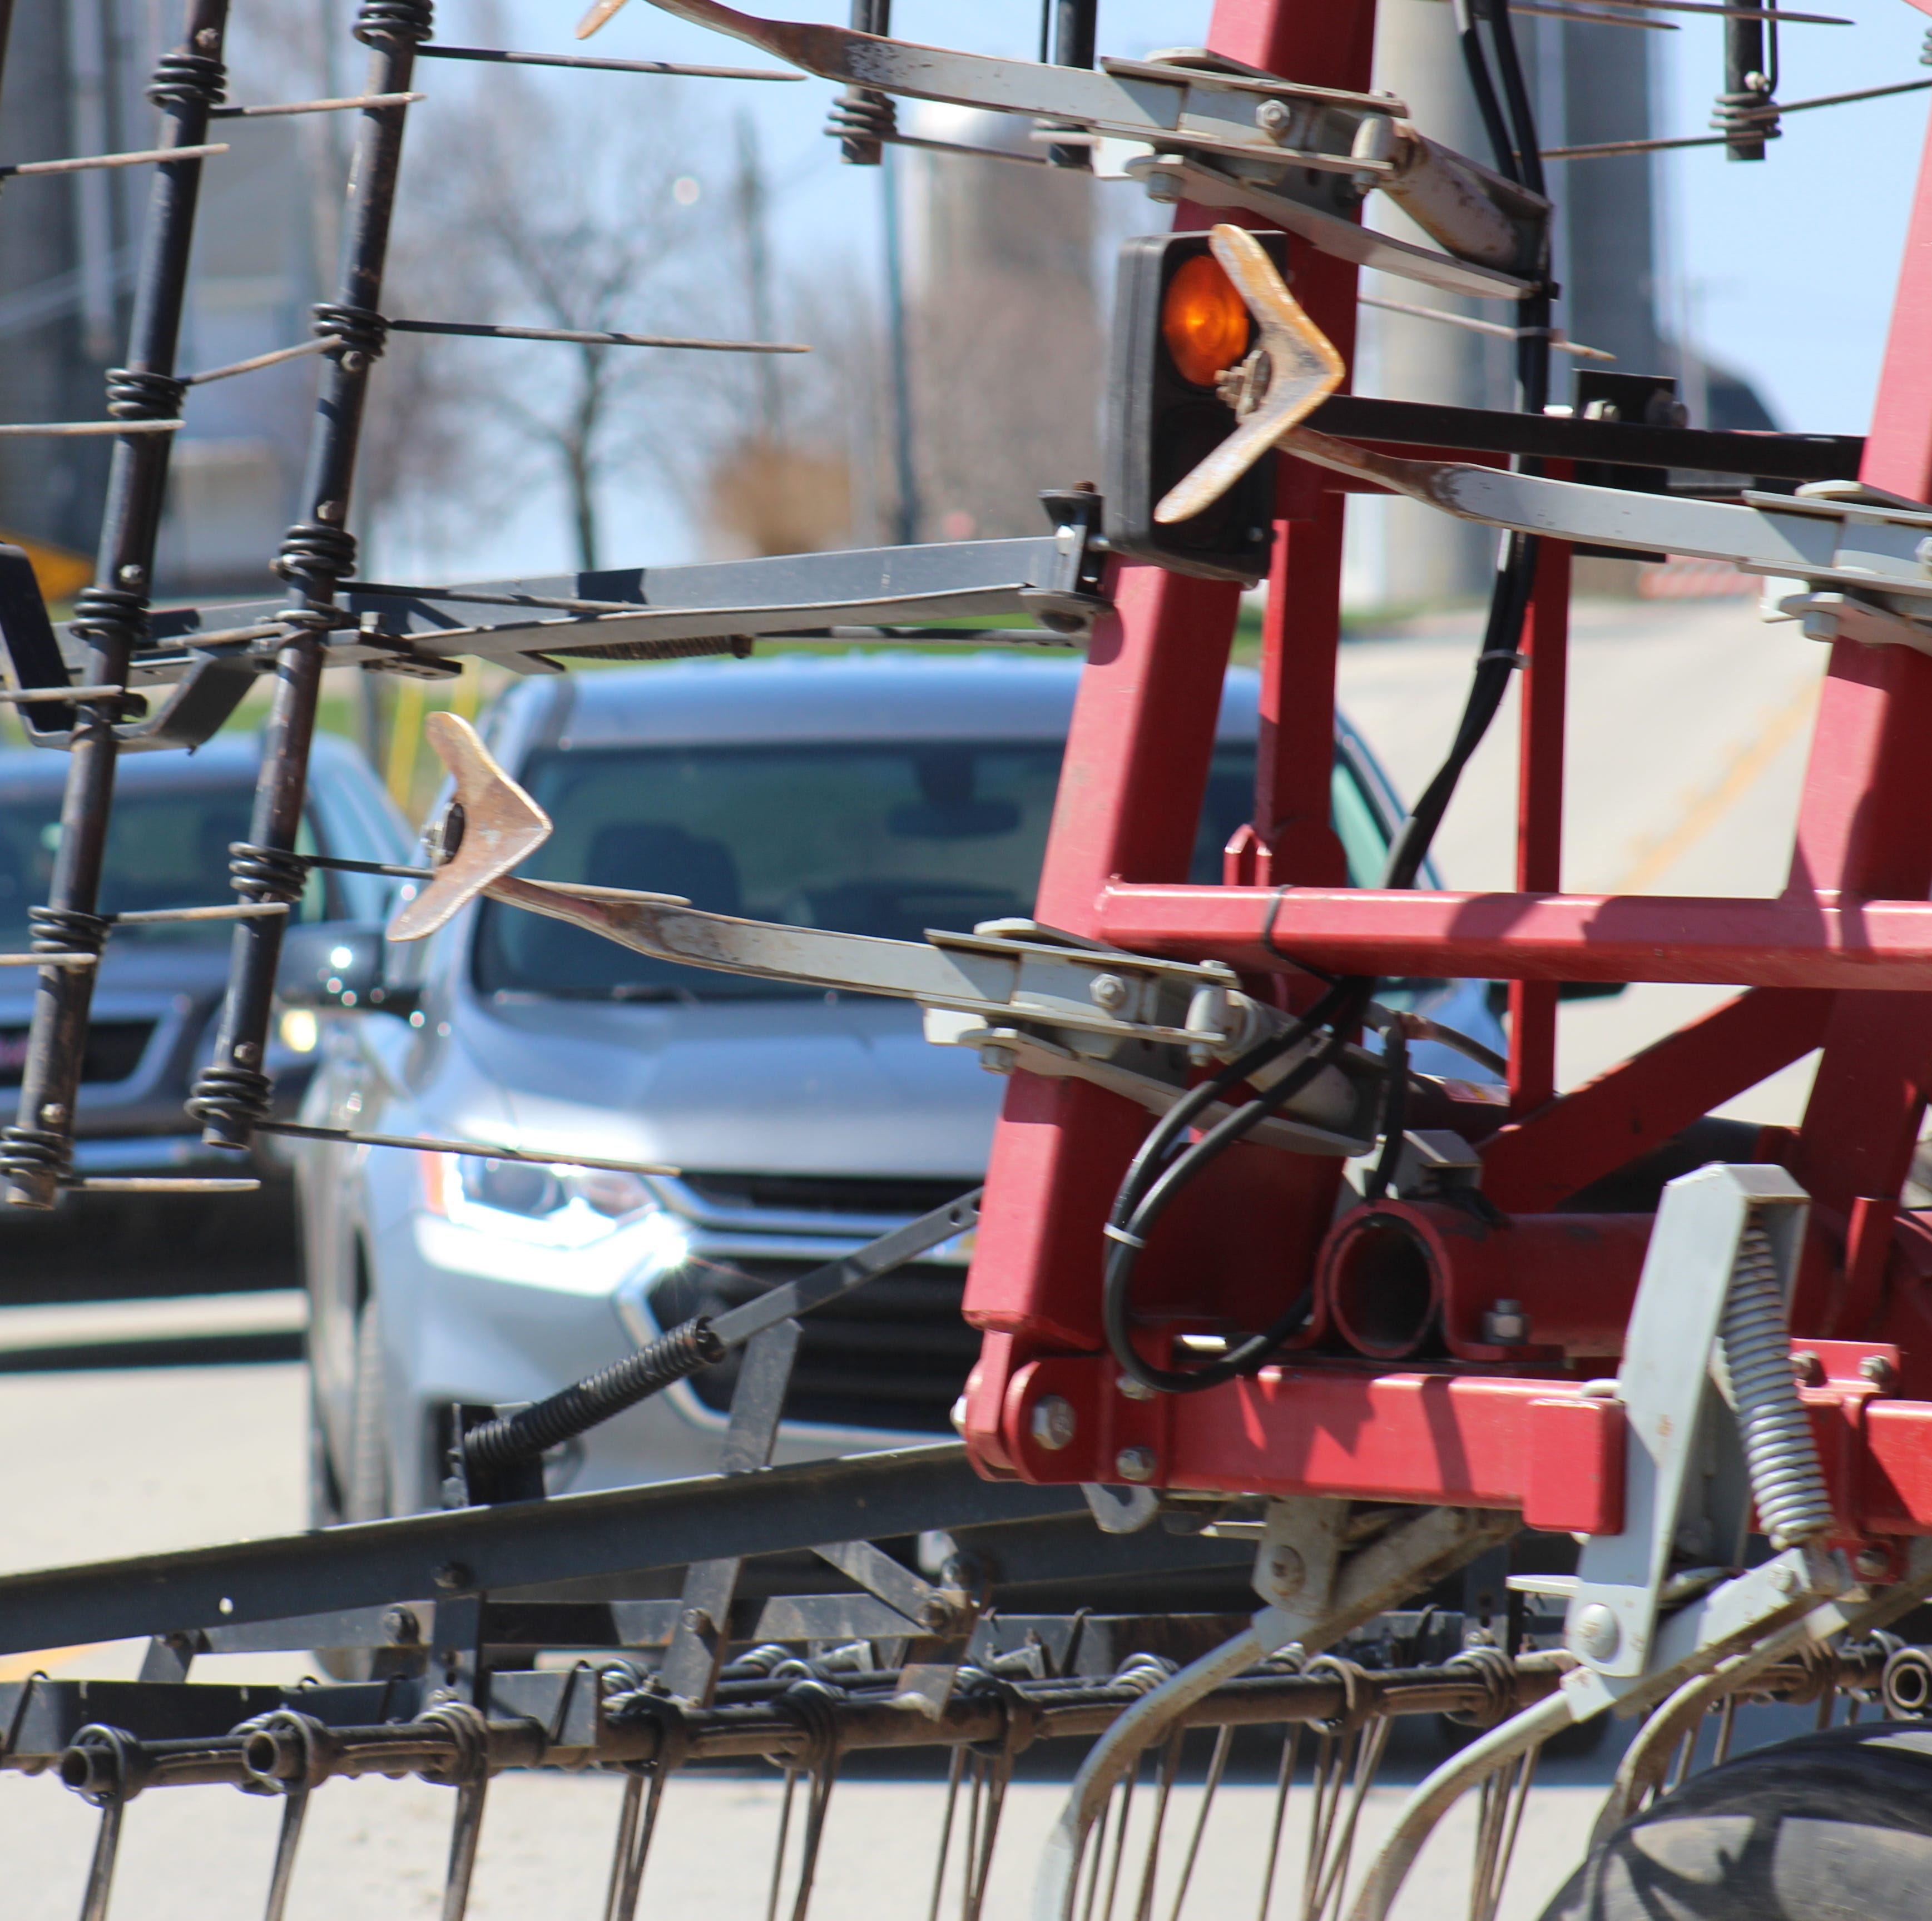 Sharing Wisconsin roads safely with farm vehicles